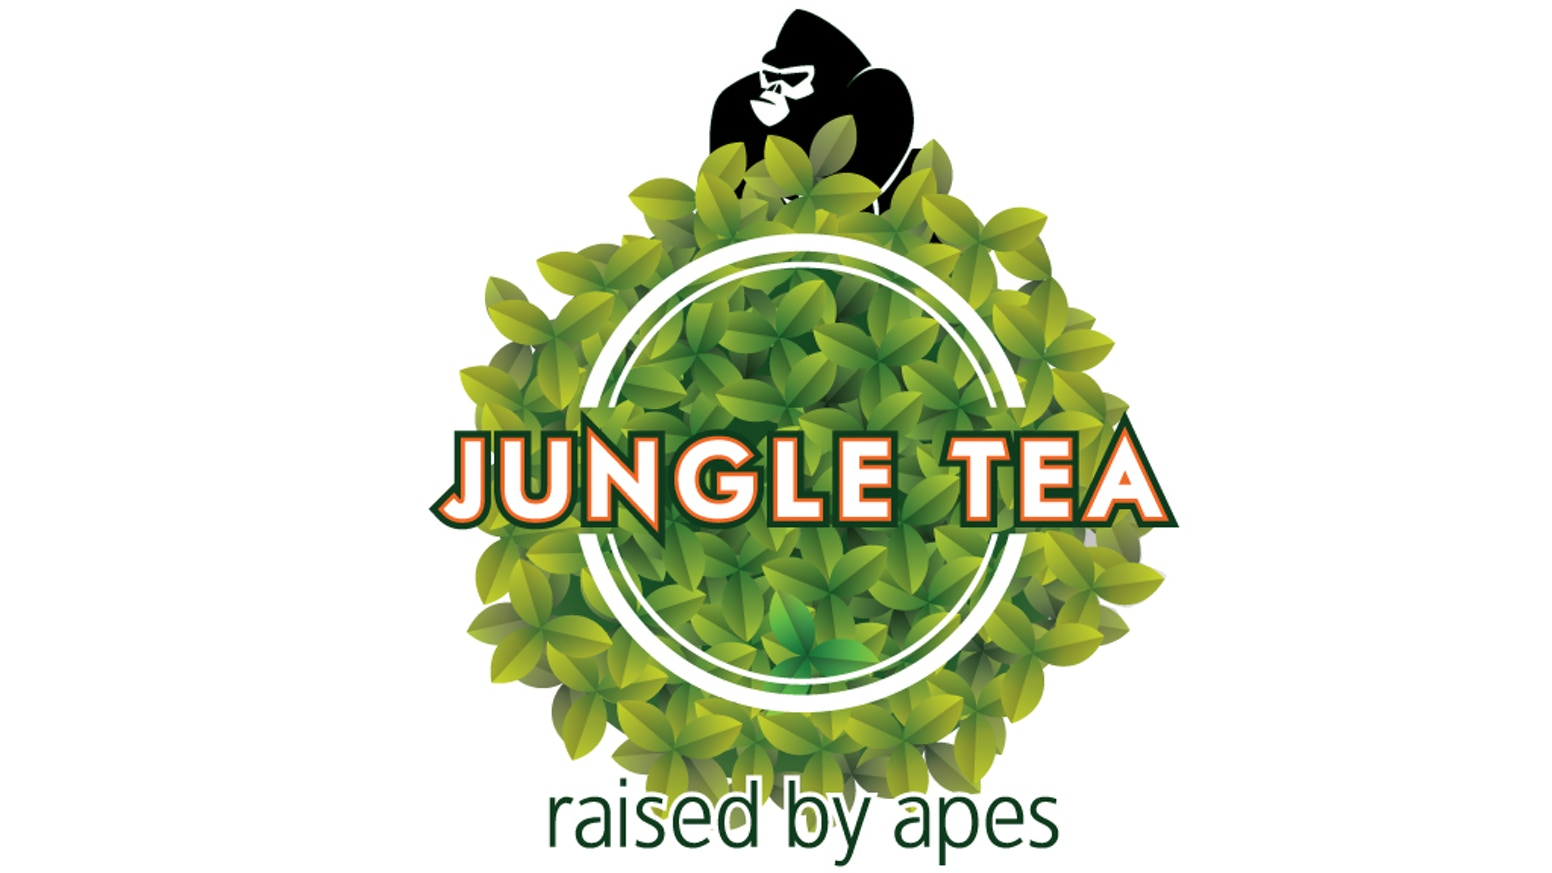 Wild teas harvested in the jungles of Africa, so unique and nutrient dense; they are published in the US National Library of Medicine.